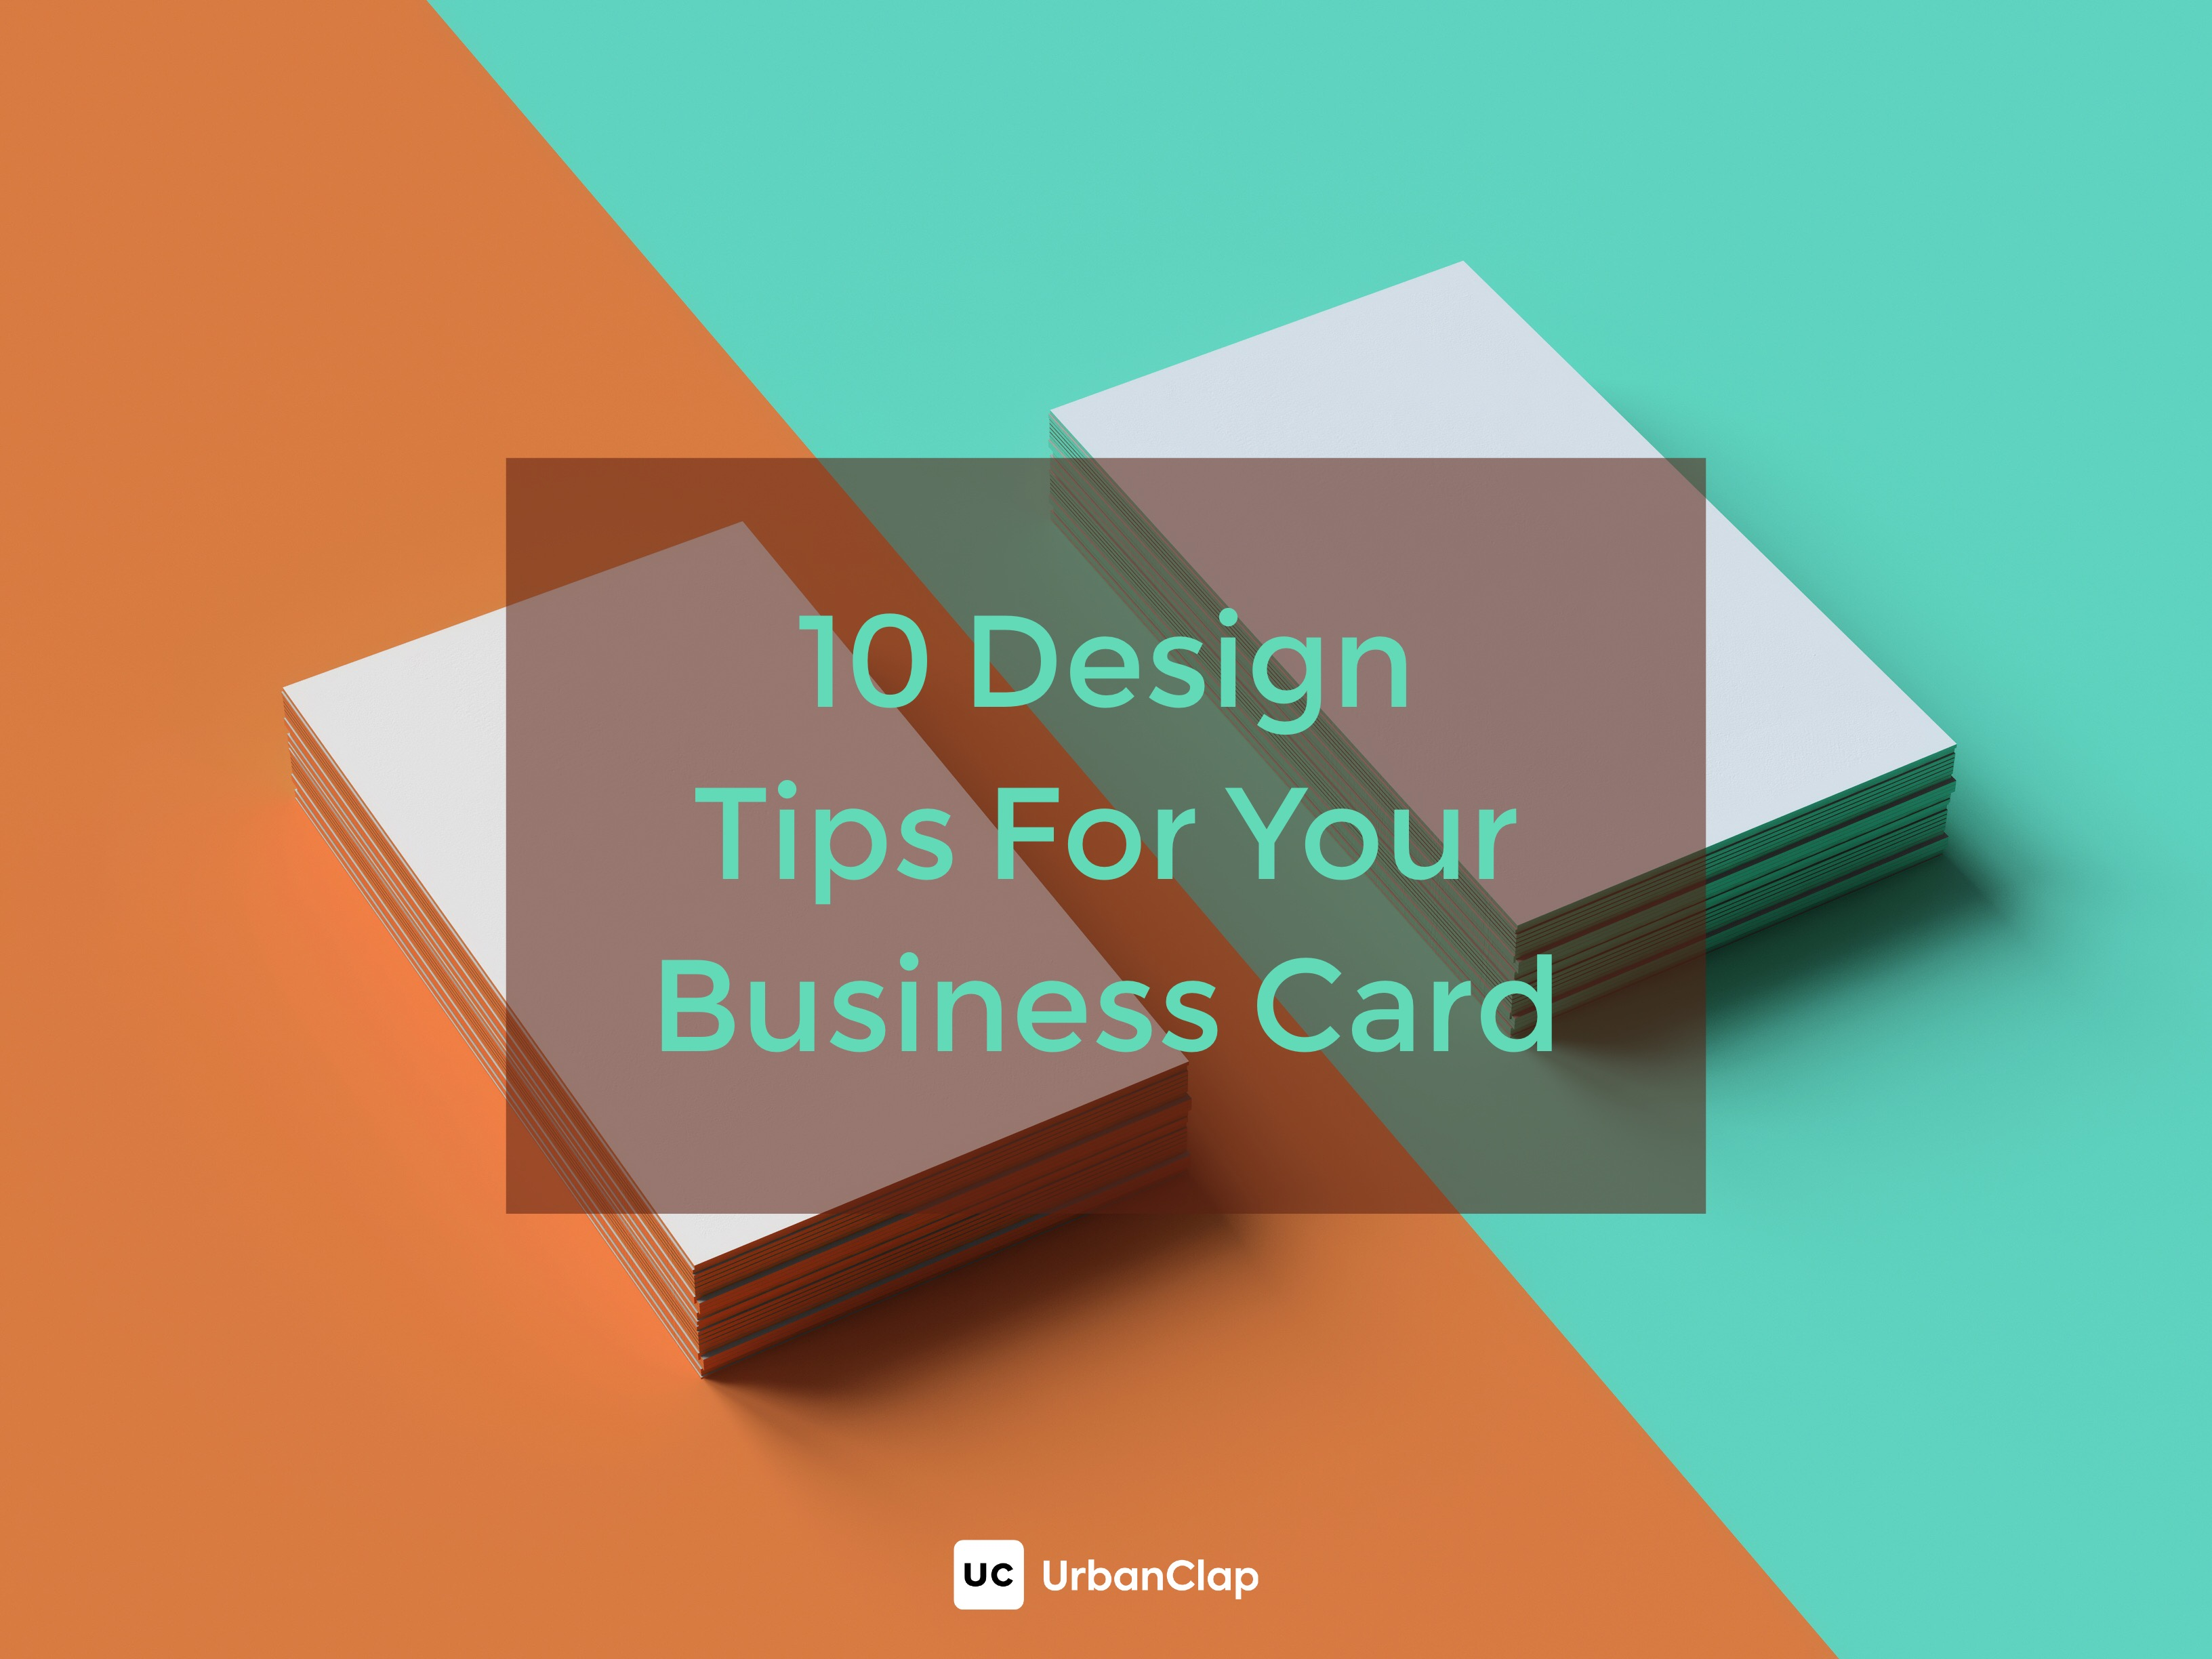 10 Things to Keep in Mind When Getting Your Business Card Designed